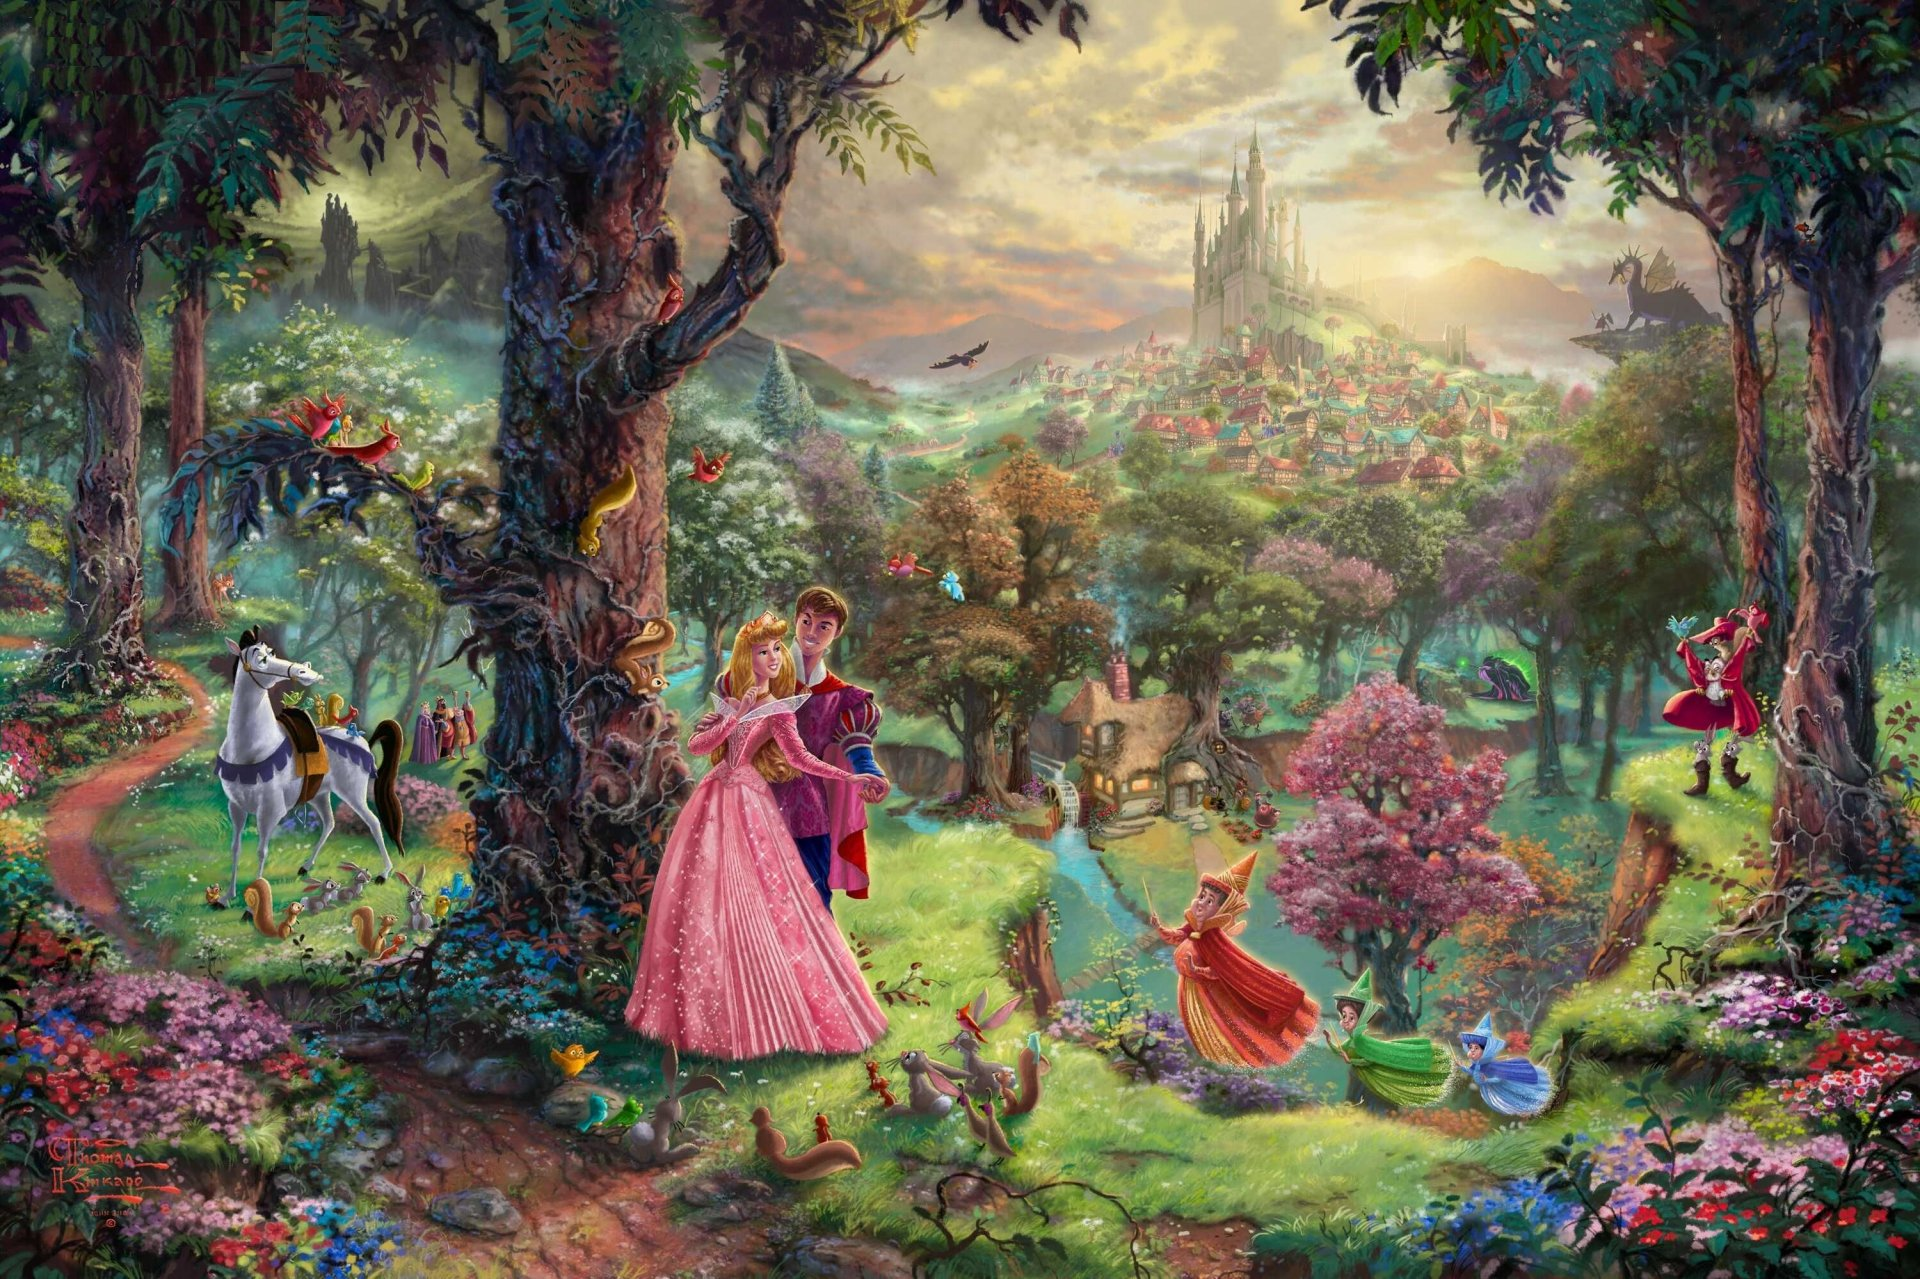 a breakdown of the characteristics of a perfect disney princess